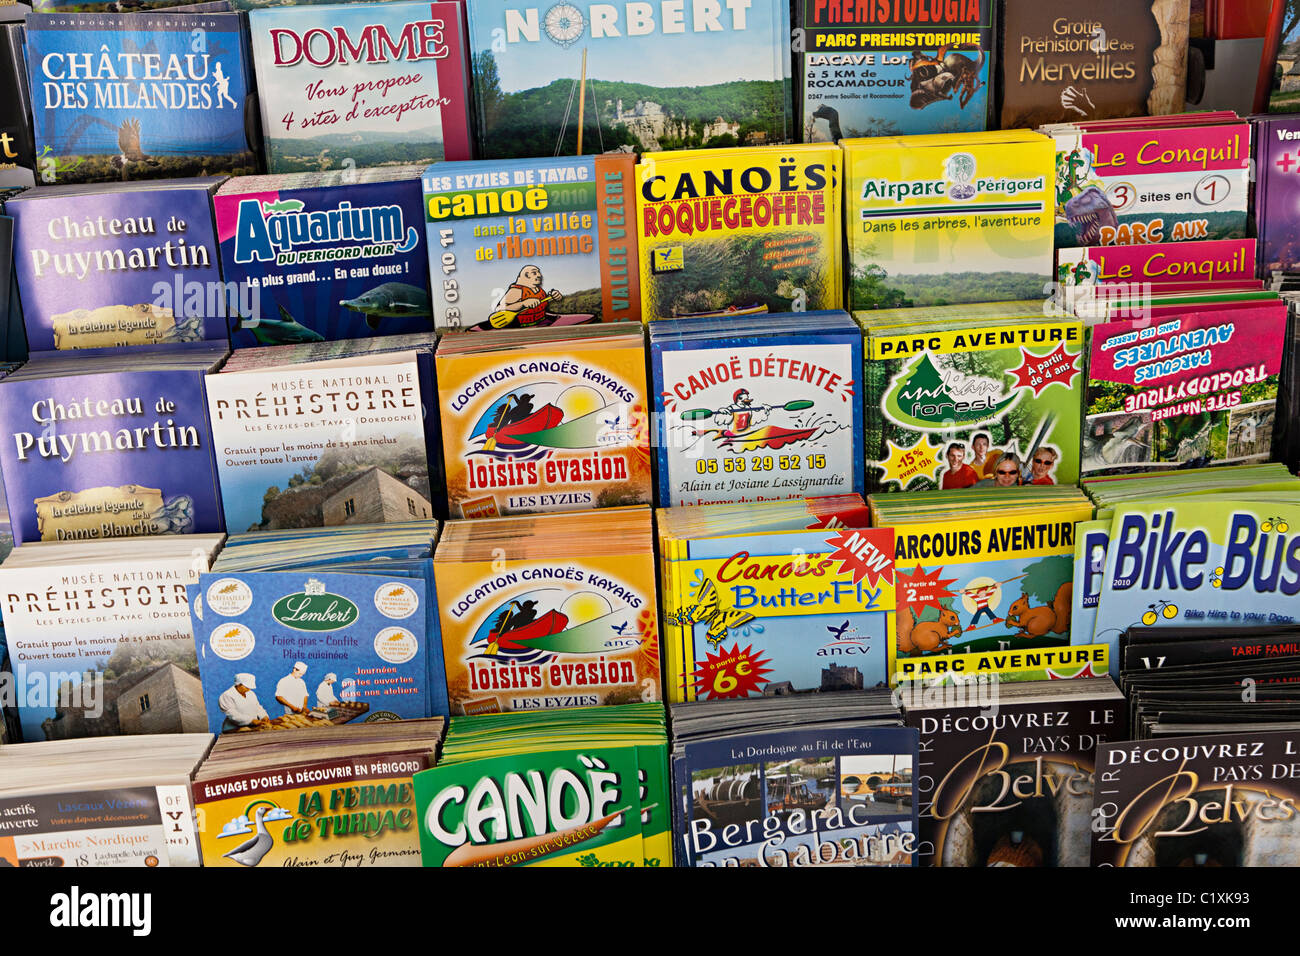 Advertising leaflets in tourist information office Montignac Dordogne France - Stock Image